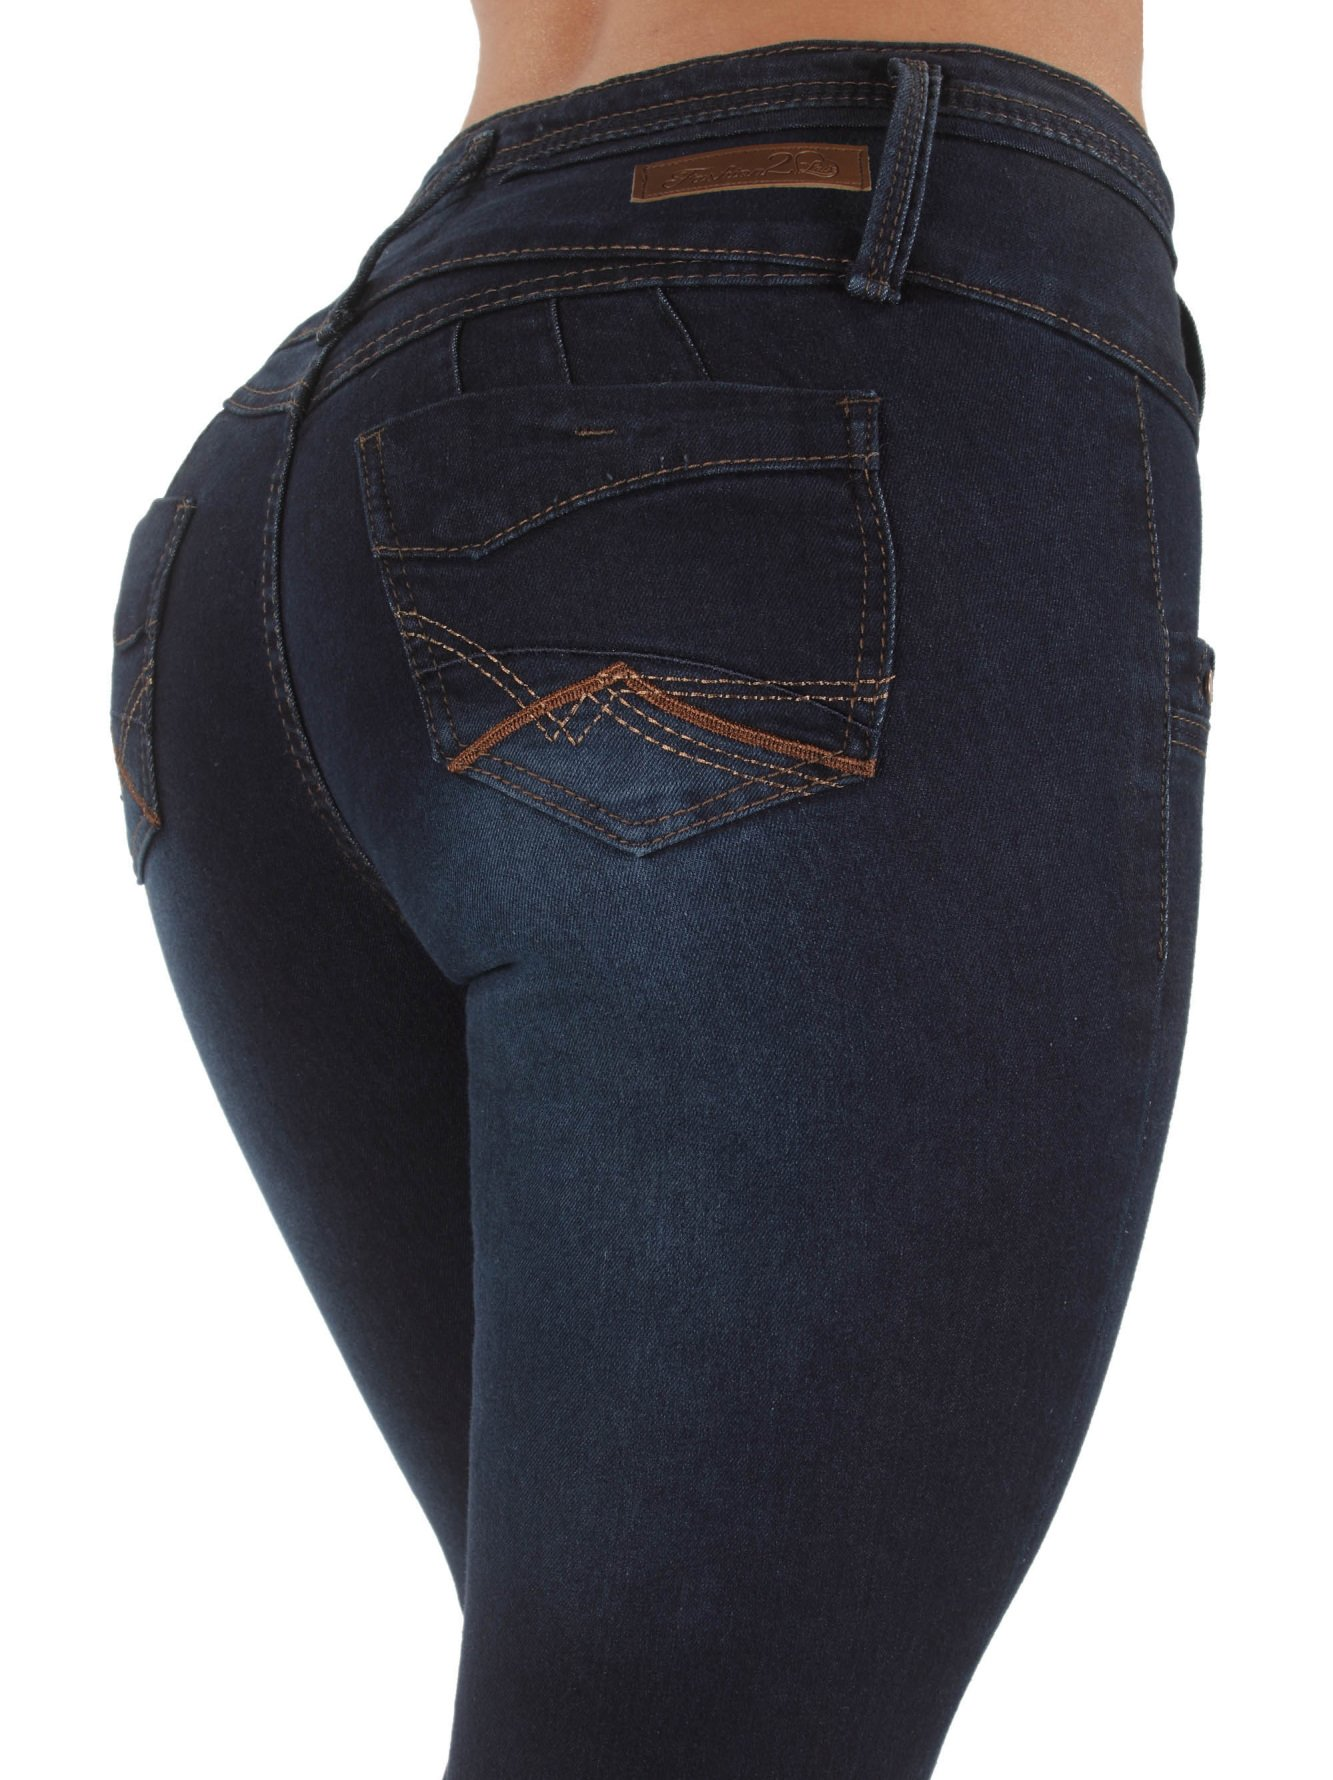 L'square jeans Style LS98195S–Colombian Design, Butt Lift, Levanta Cola, Skinny Jeans in Dark Blue Size 15